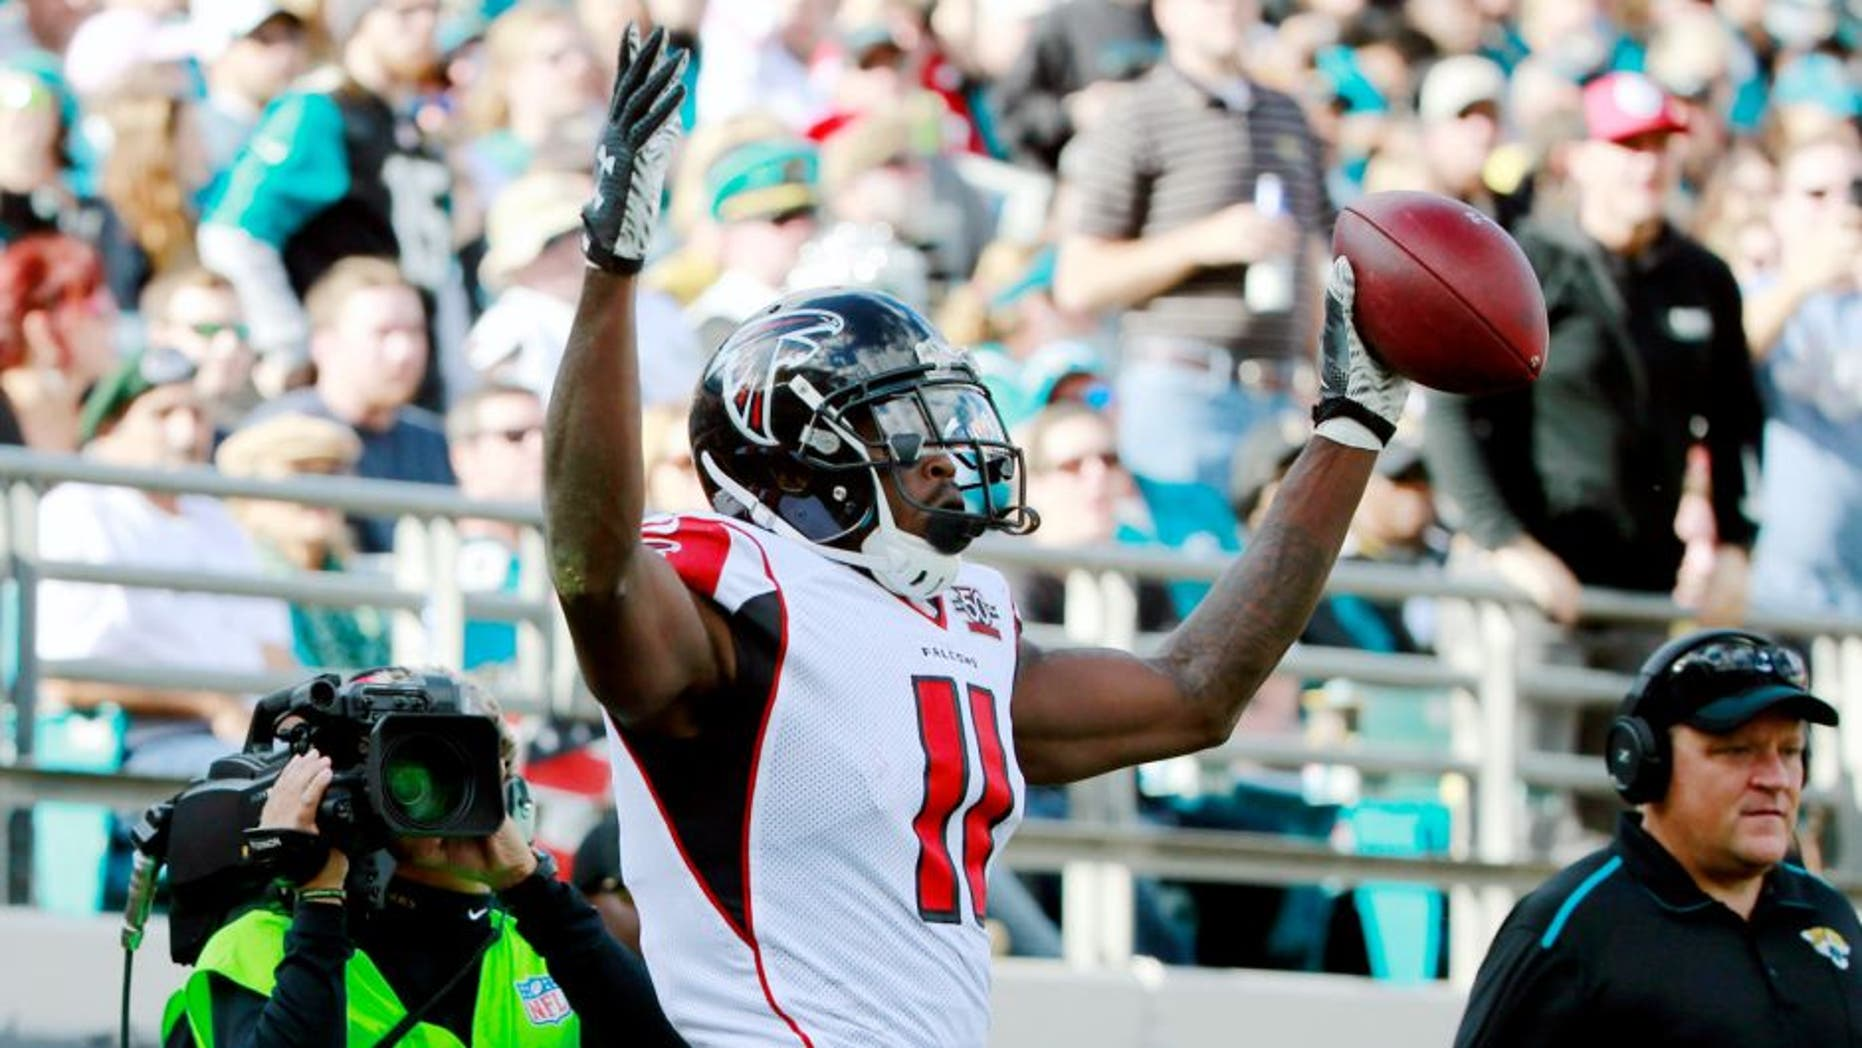 Dec 20, 2015; Jacksonville, FL, USA; Atlanta Falcons wide receiver Julio Jones (11) reacts after scoring a touchdown against the Jacksonville Jaguars during the first half at EverBank Field. Mandatory Credit: Kim Klement-USA TODAY Sports